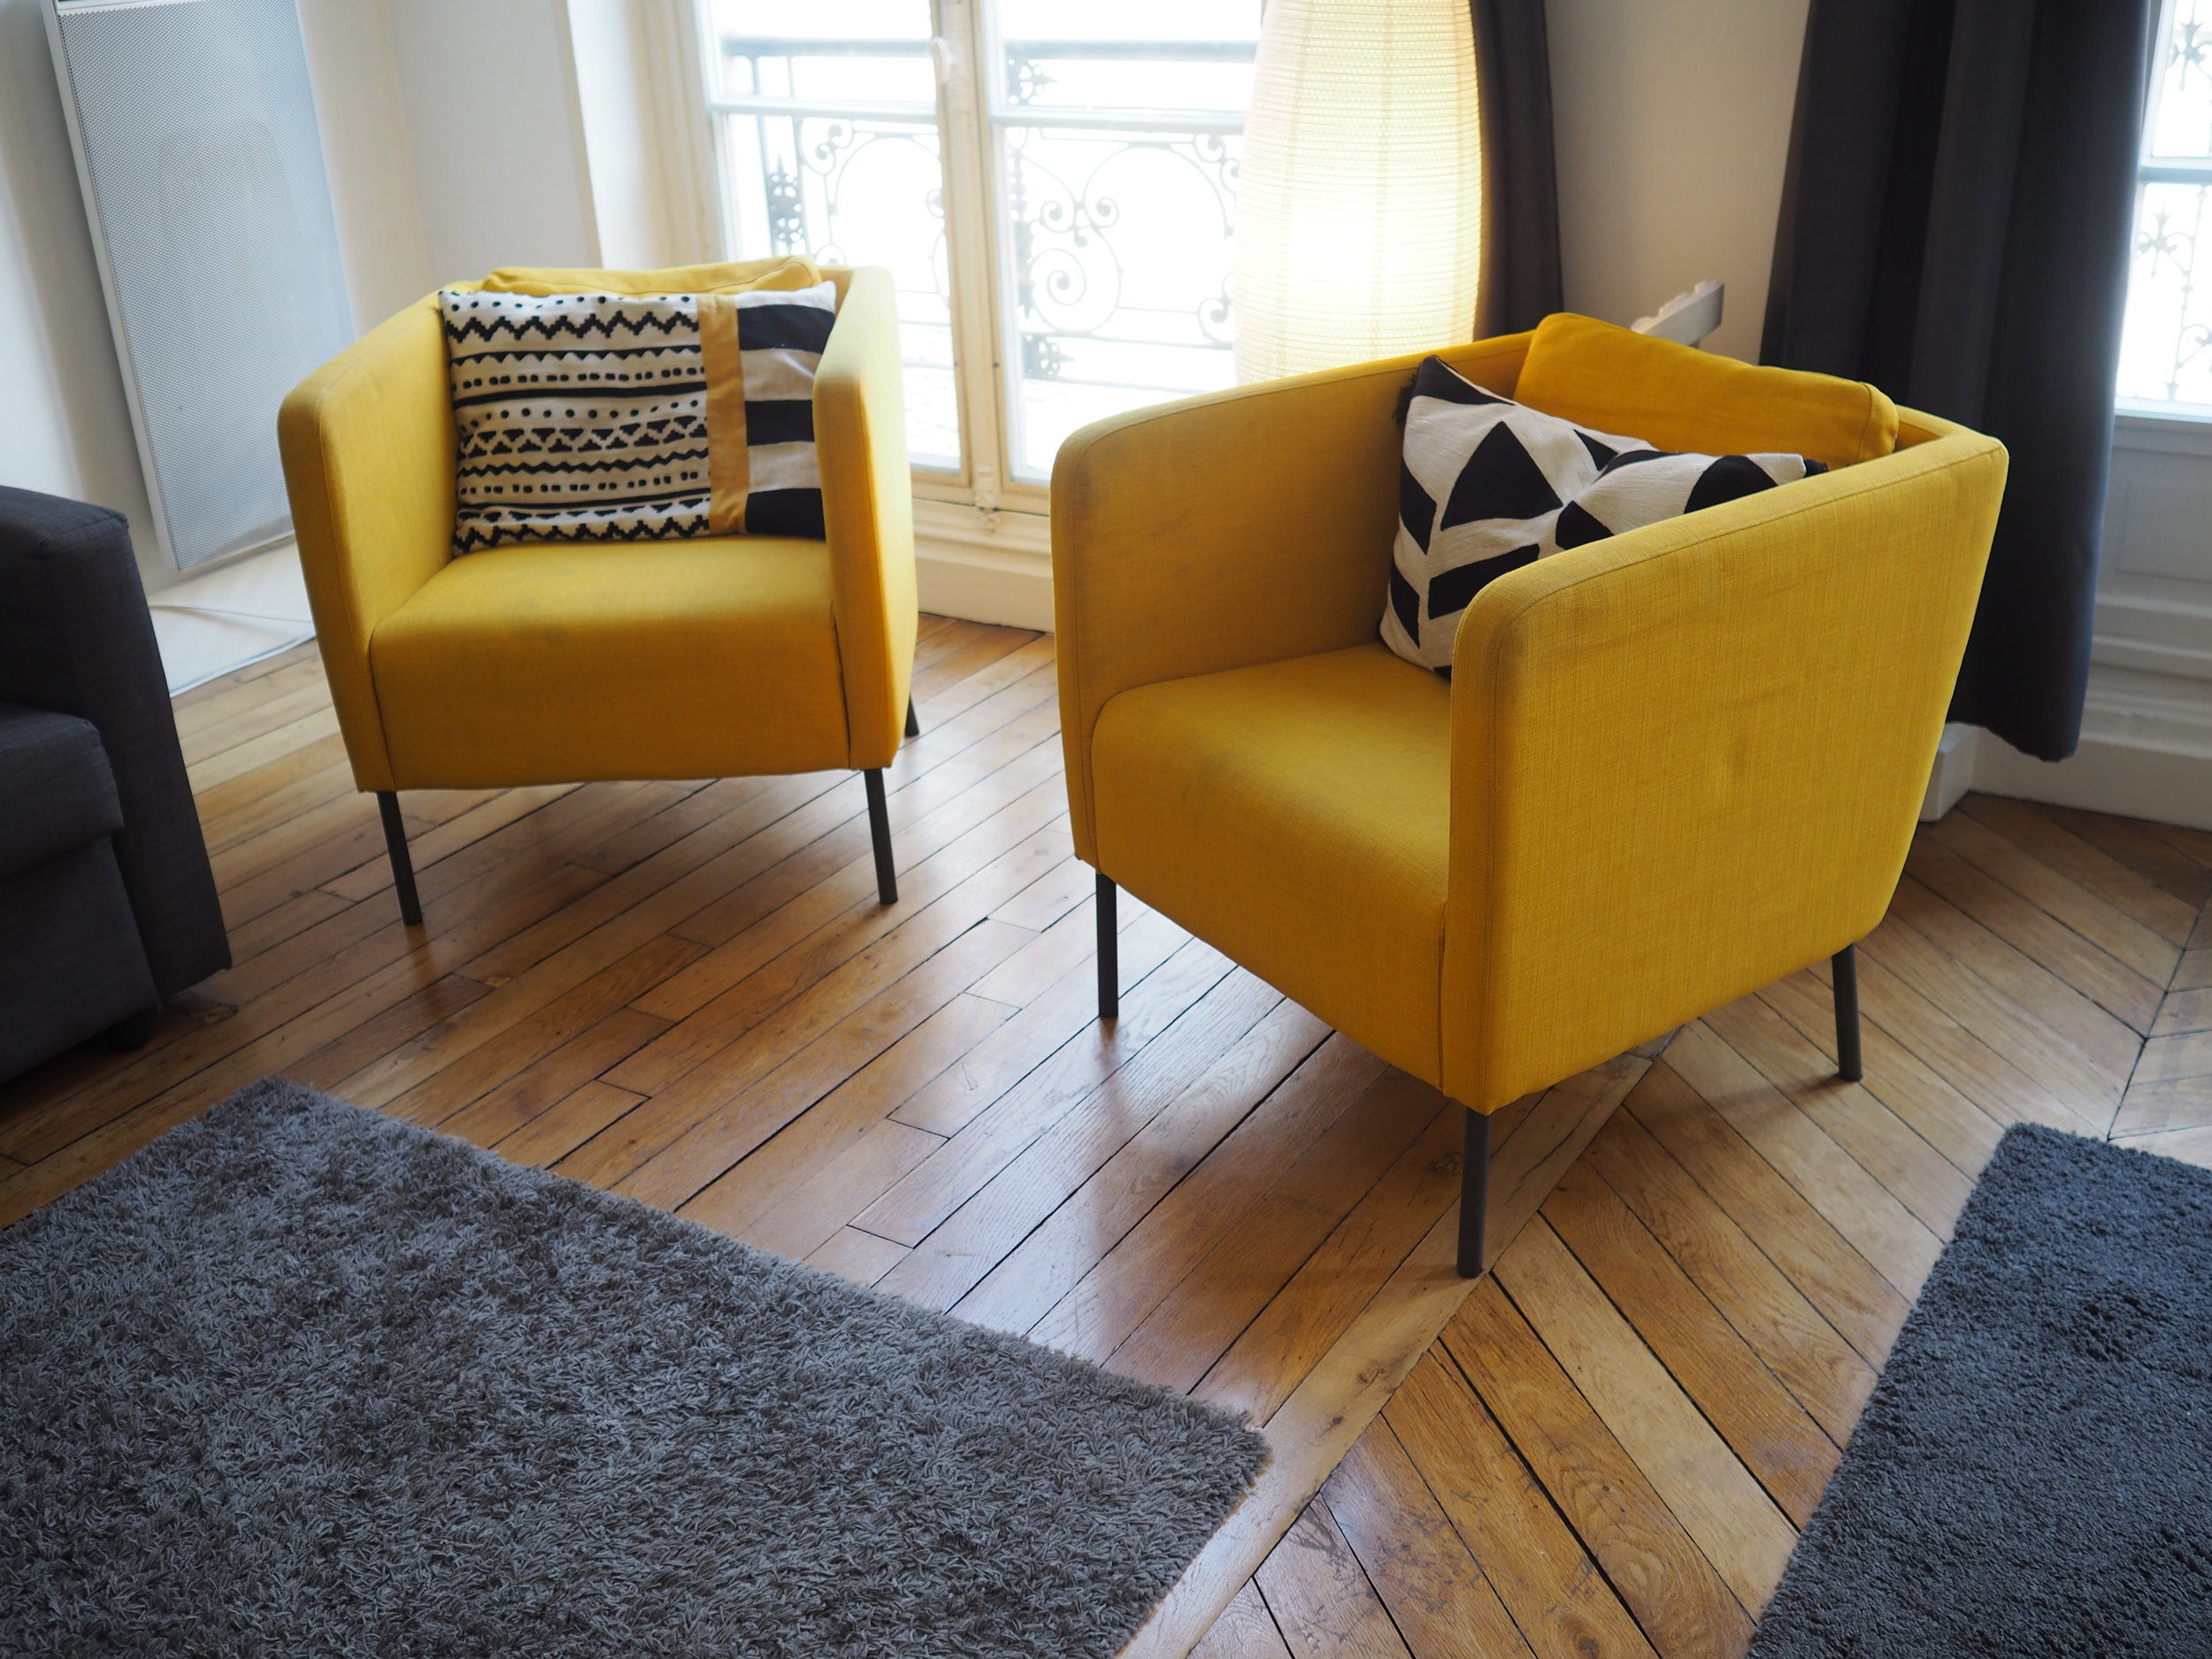 I need these little chairs in my house…